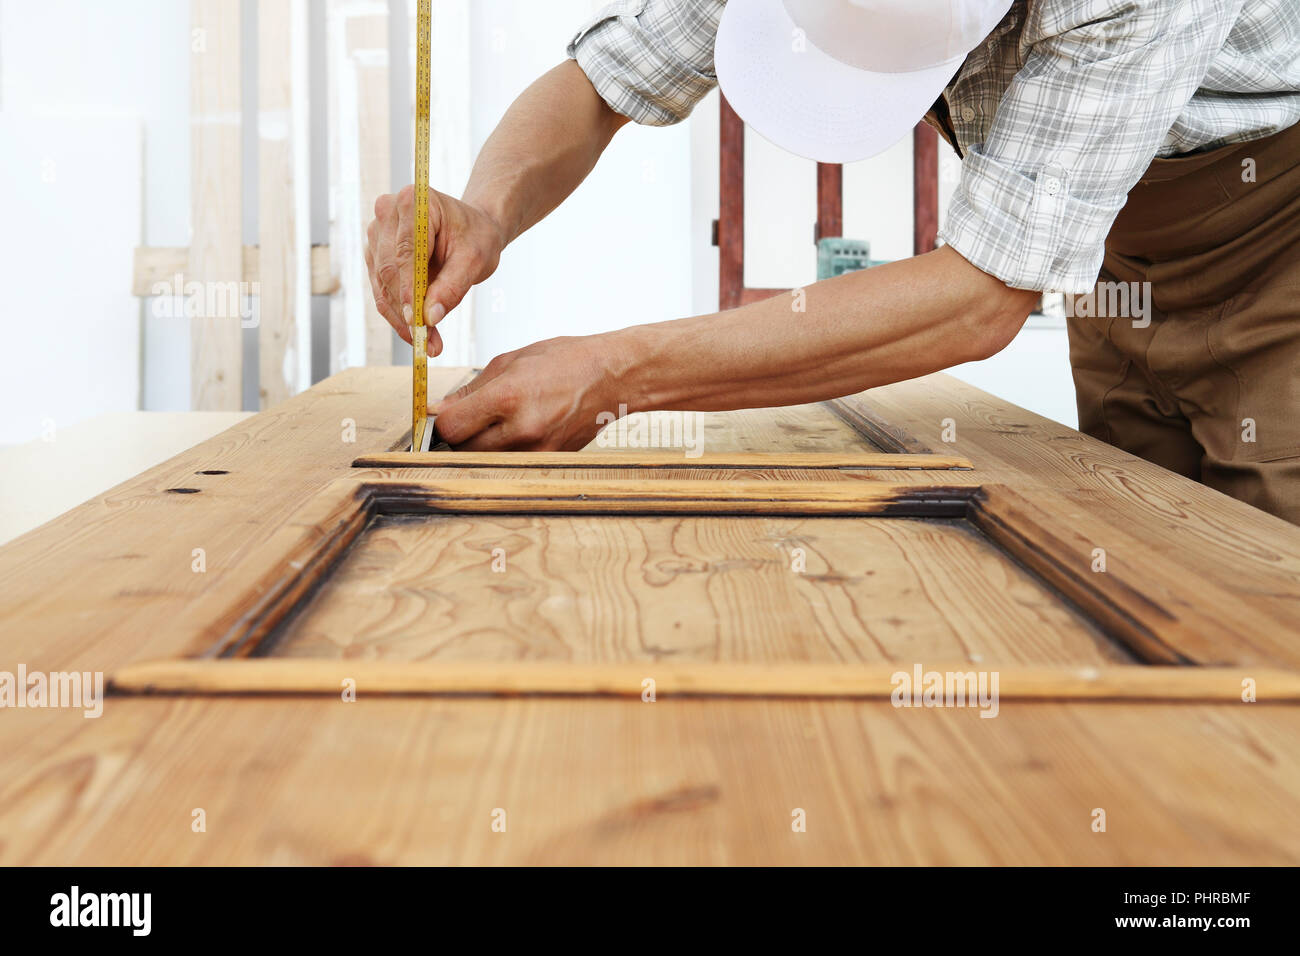 carpenter work the wood, measuring a thickness with angle square on wooden vintage door - Stock Image